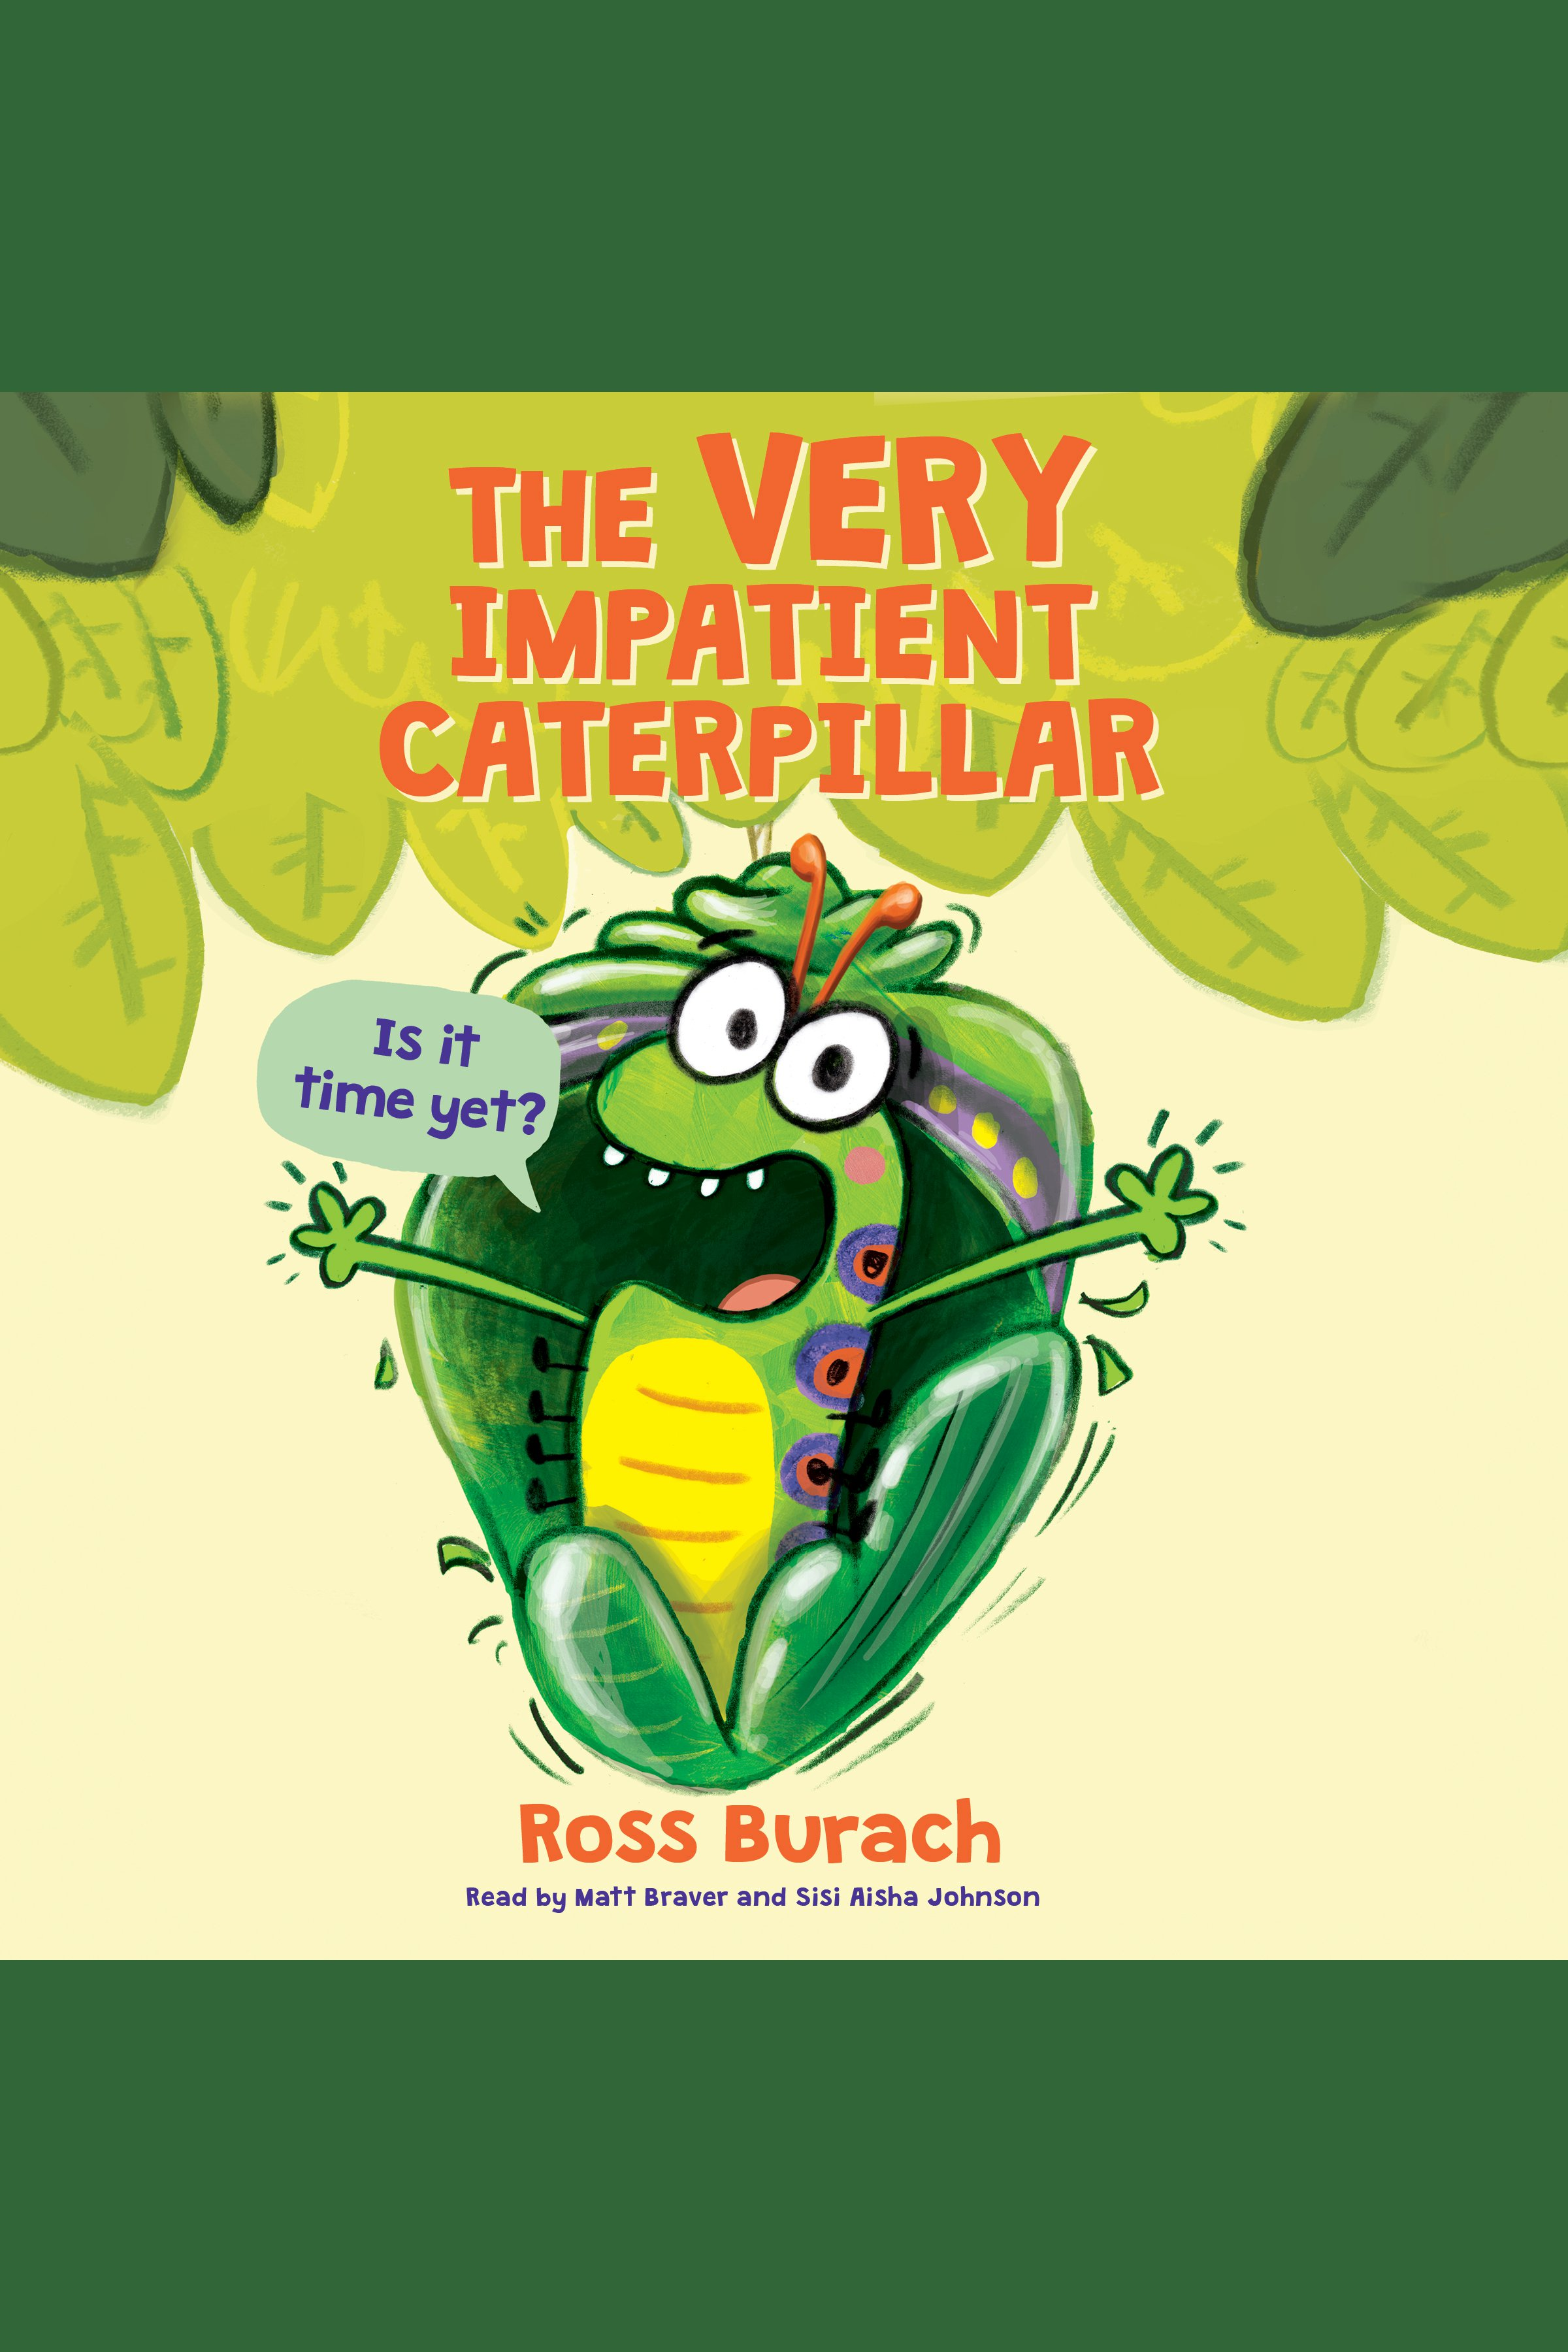 The Very Impatient Caterpillar : am I a butterfly yet? cover image